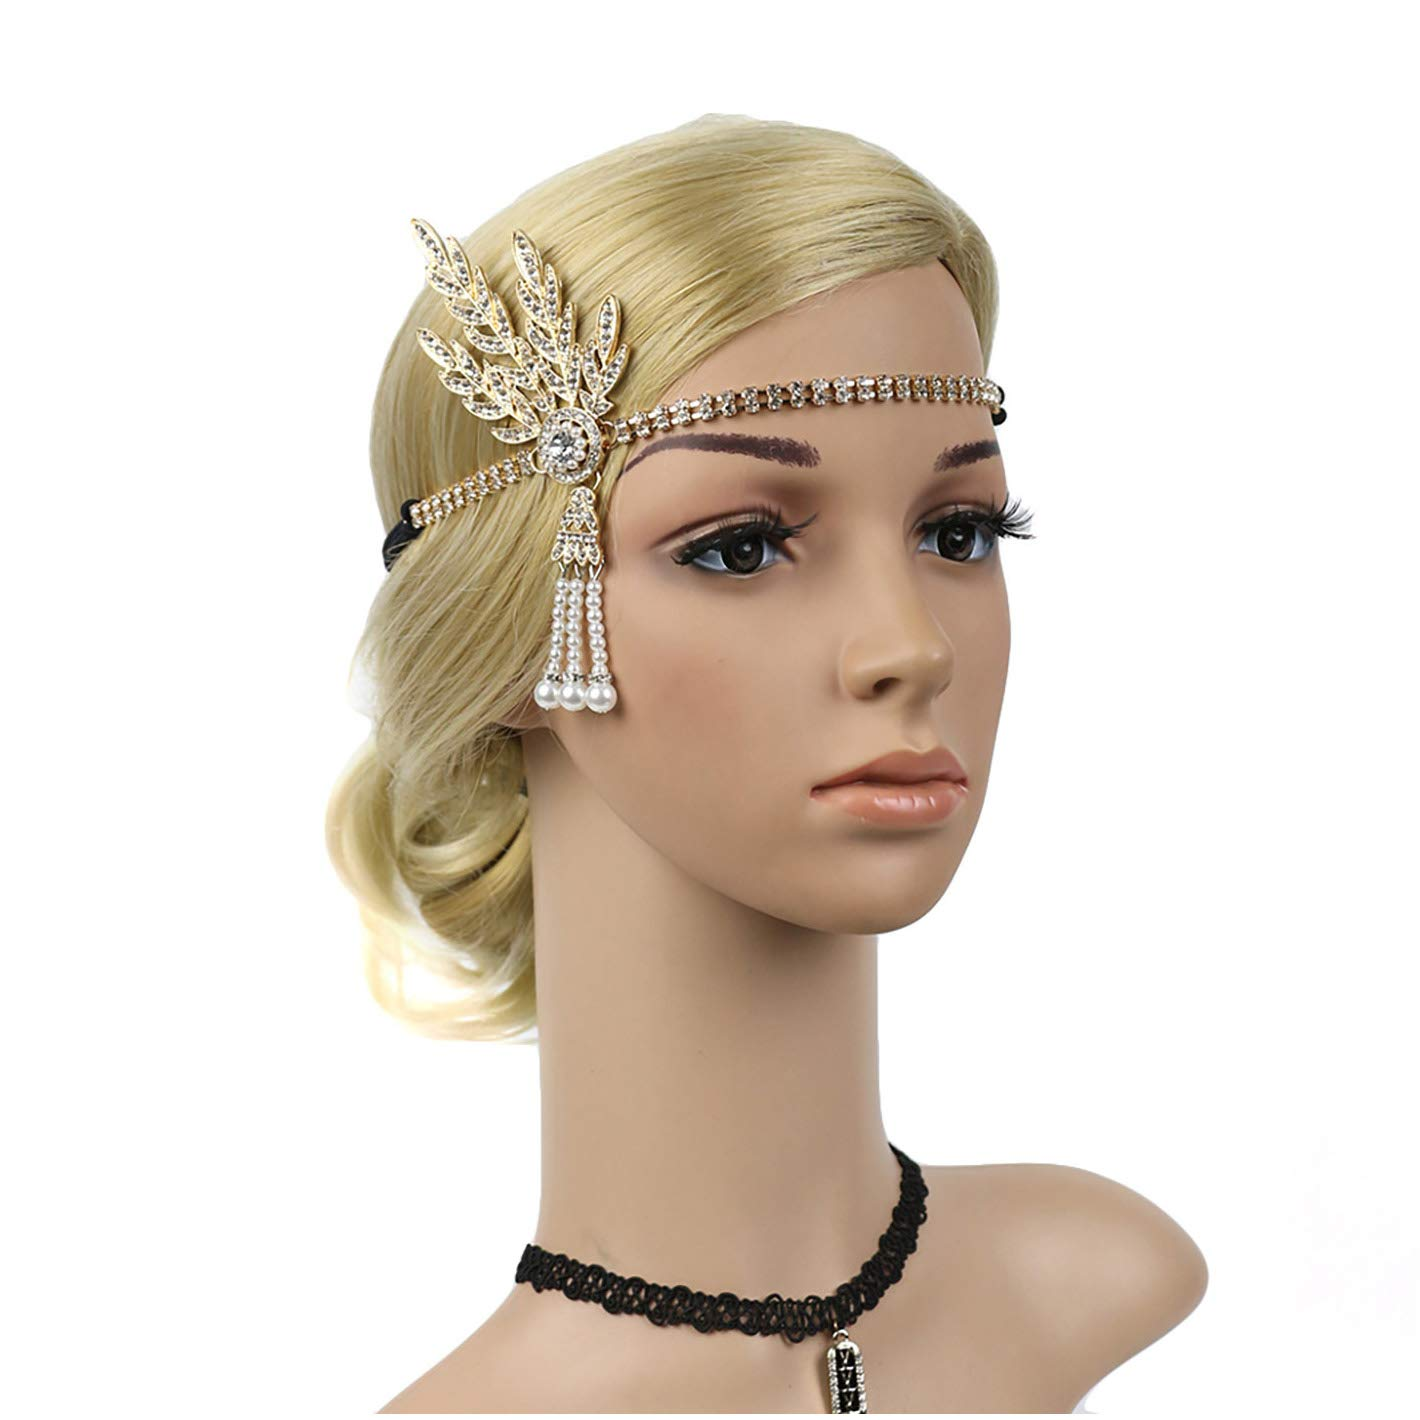 1920's Flapper Headbands Great Gatsby Inspired 20s Headpiece Flapper Costume Accessories